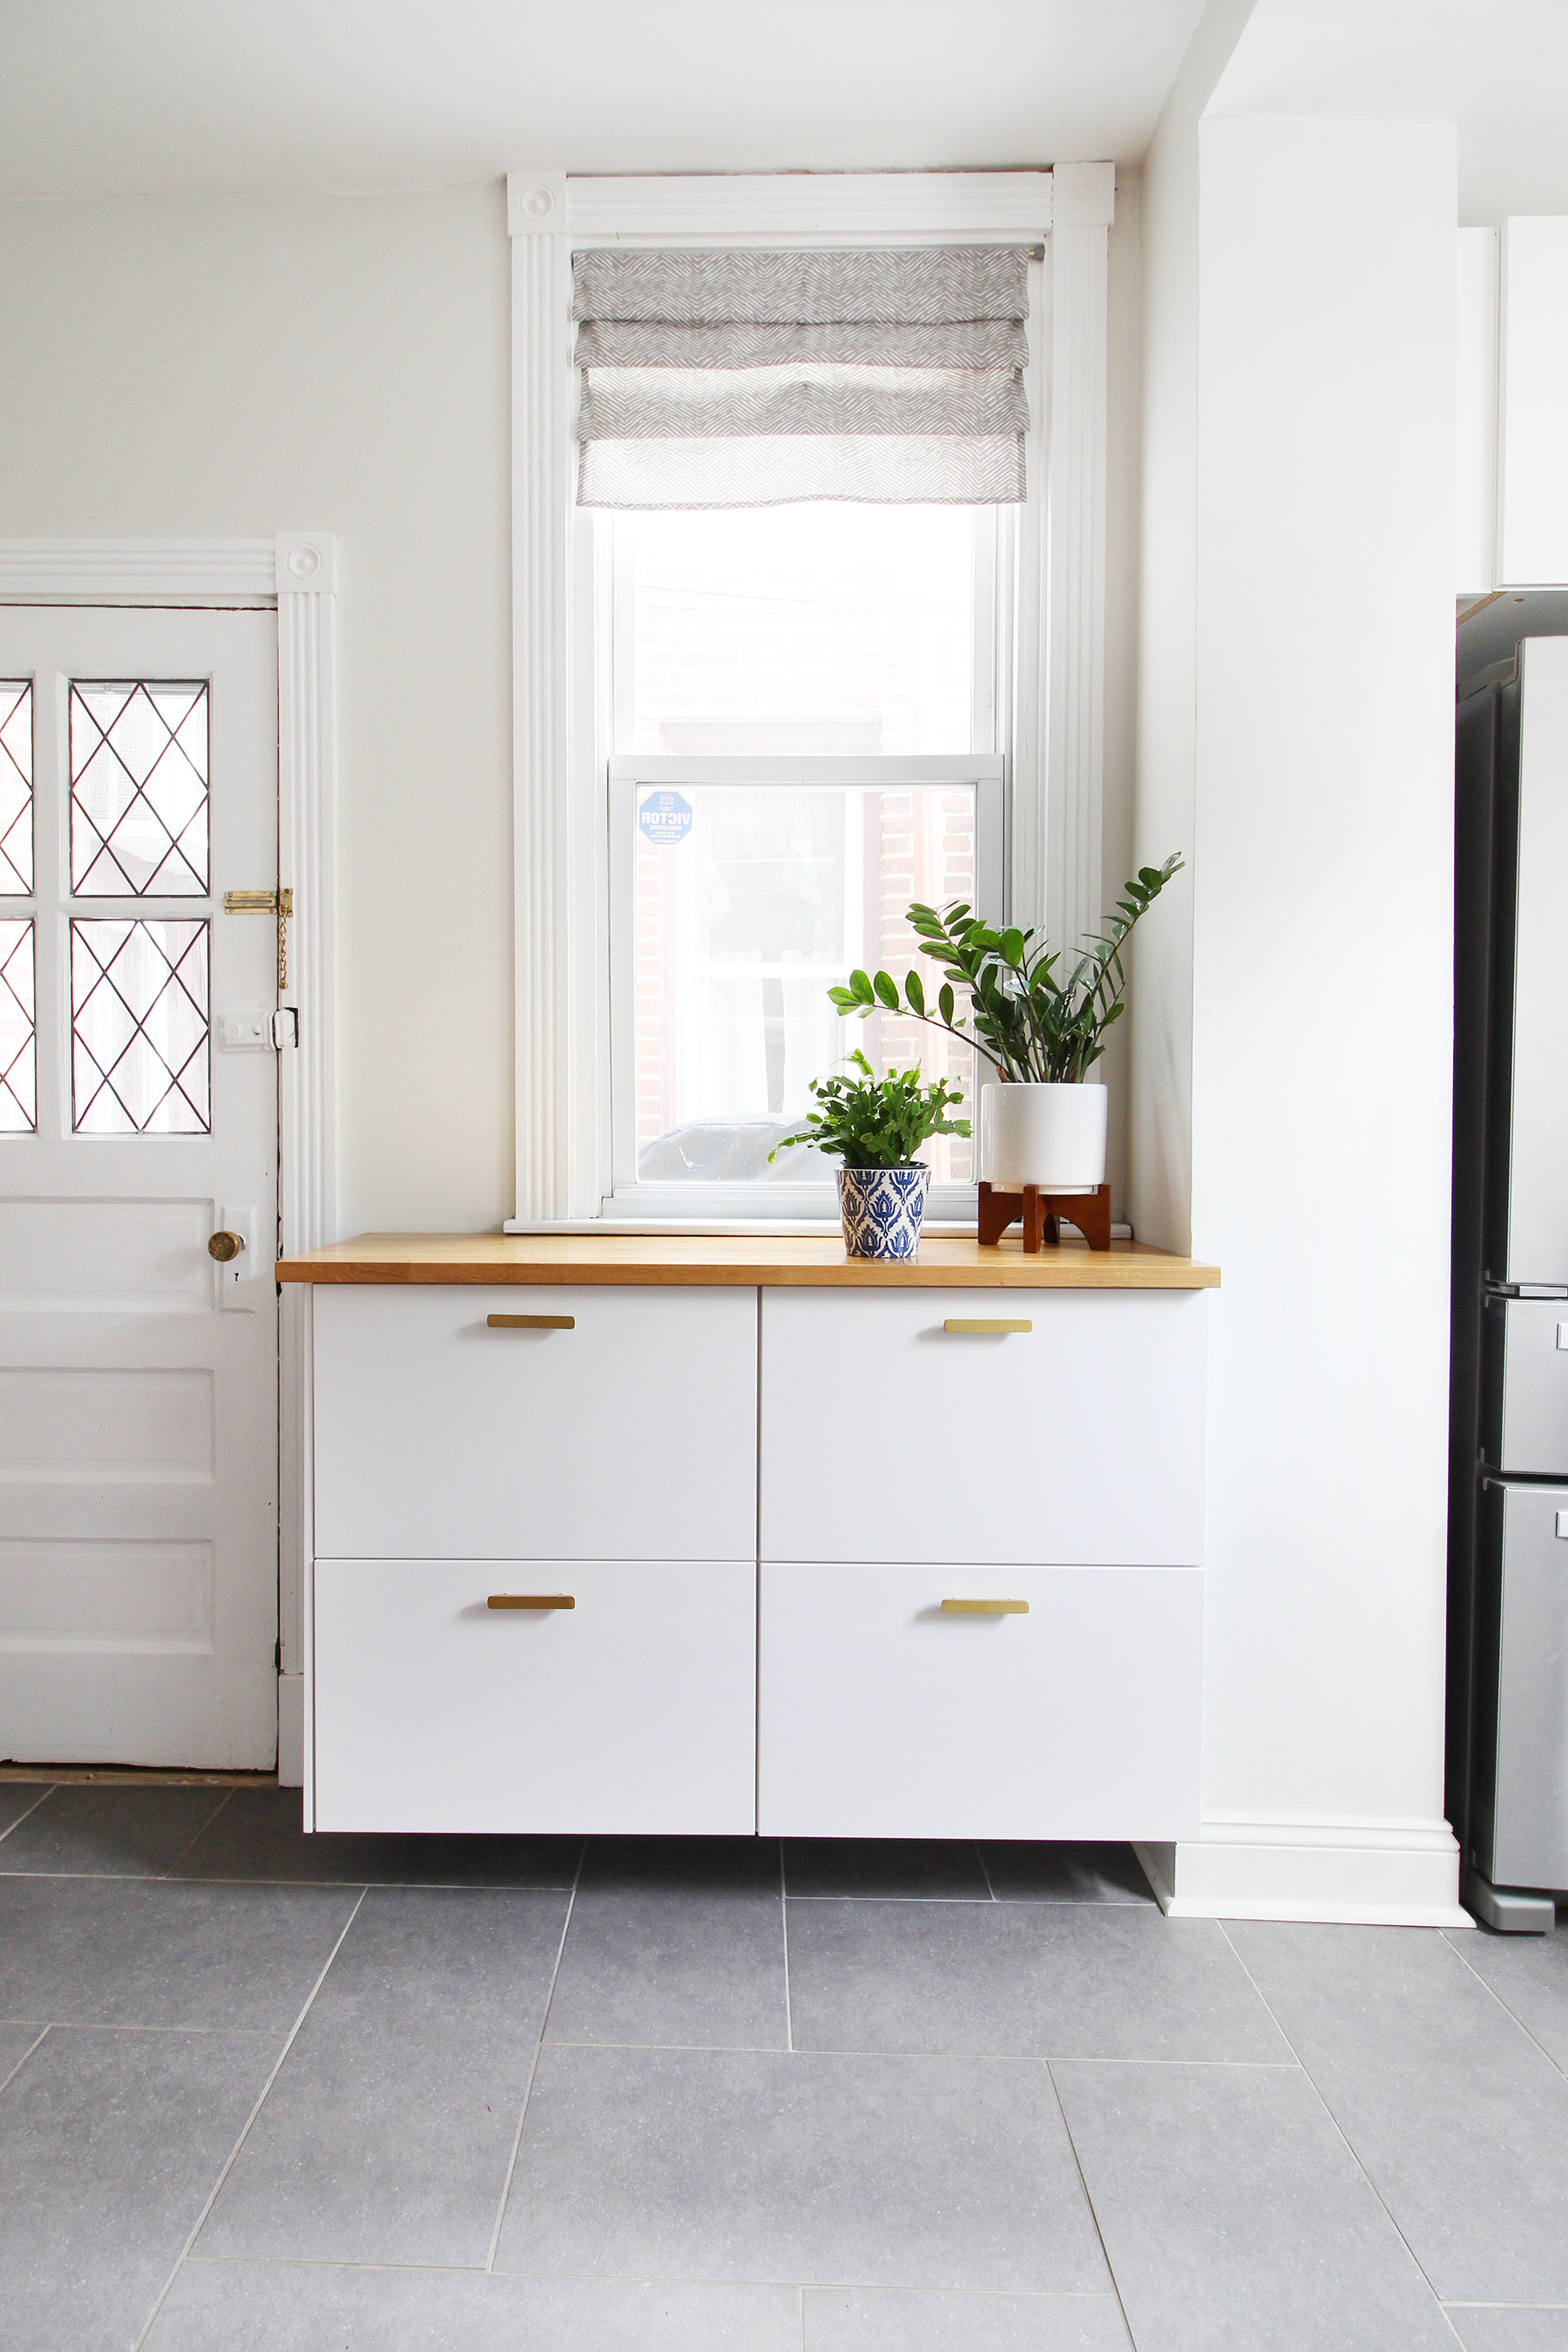 A 1930s row home in Philadelphia gets a big makeover. Come see the before and after of this home's living, dining, and kitchen open floor plan and get ideas for small space city living. Chaney's style is mid-century modern meets traditional that makes for an eclectic, cozy space. Floating modern cabinets with butcher block top offer extra storage in the kitchen.